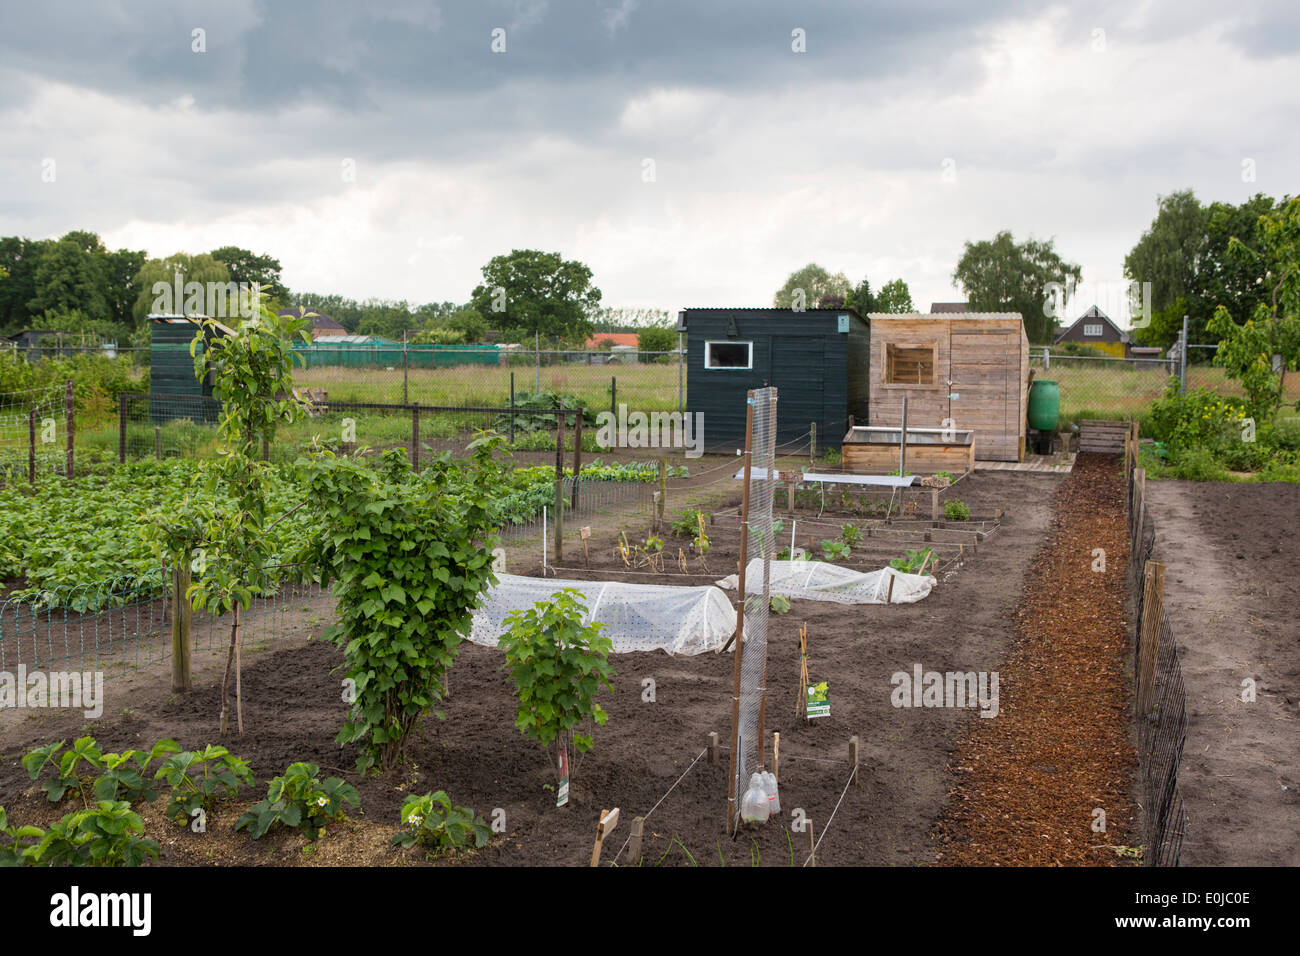 A perfect maintained allotment garden in the Netherlands - Stock Image